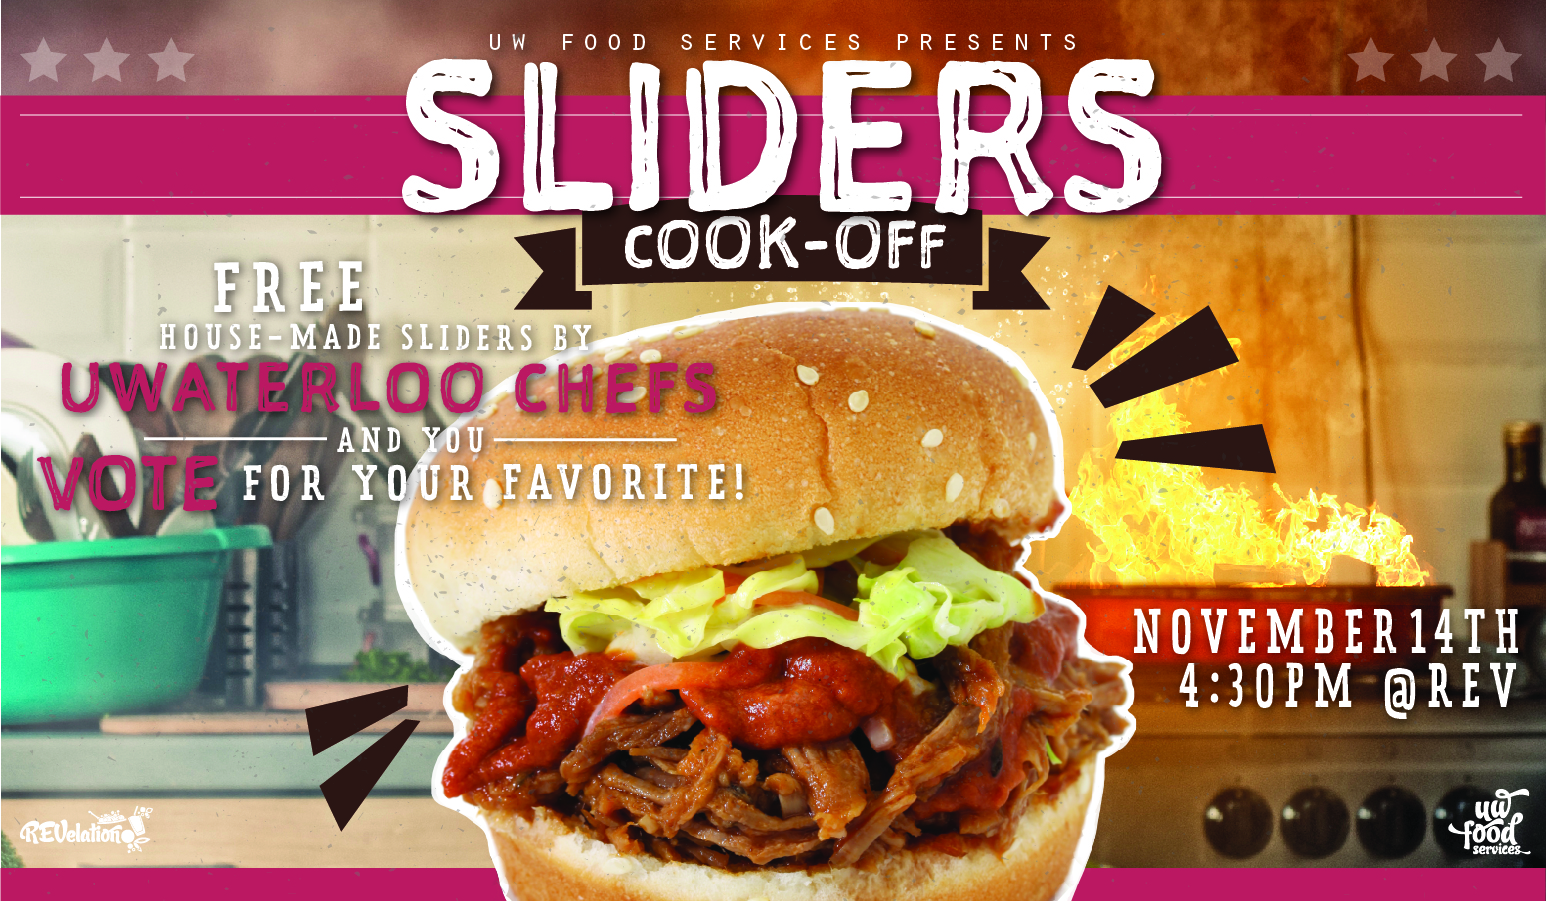 Sliders cook-off poster